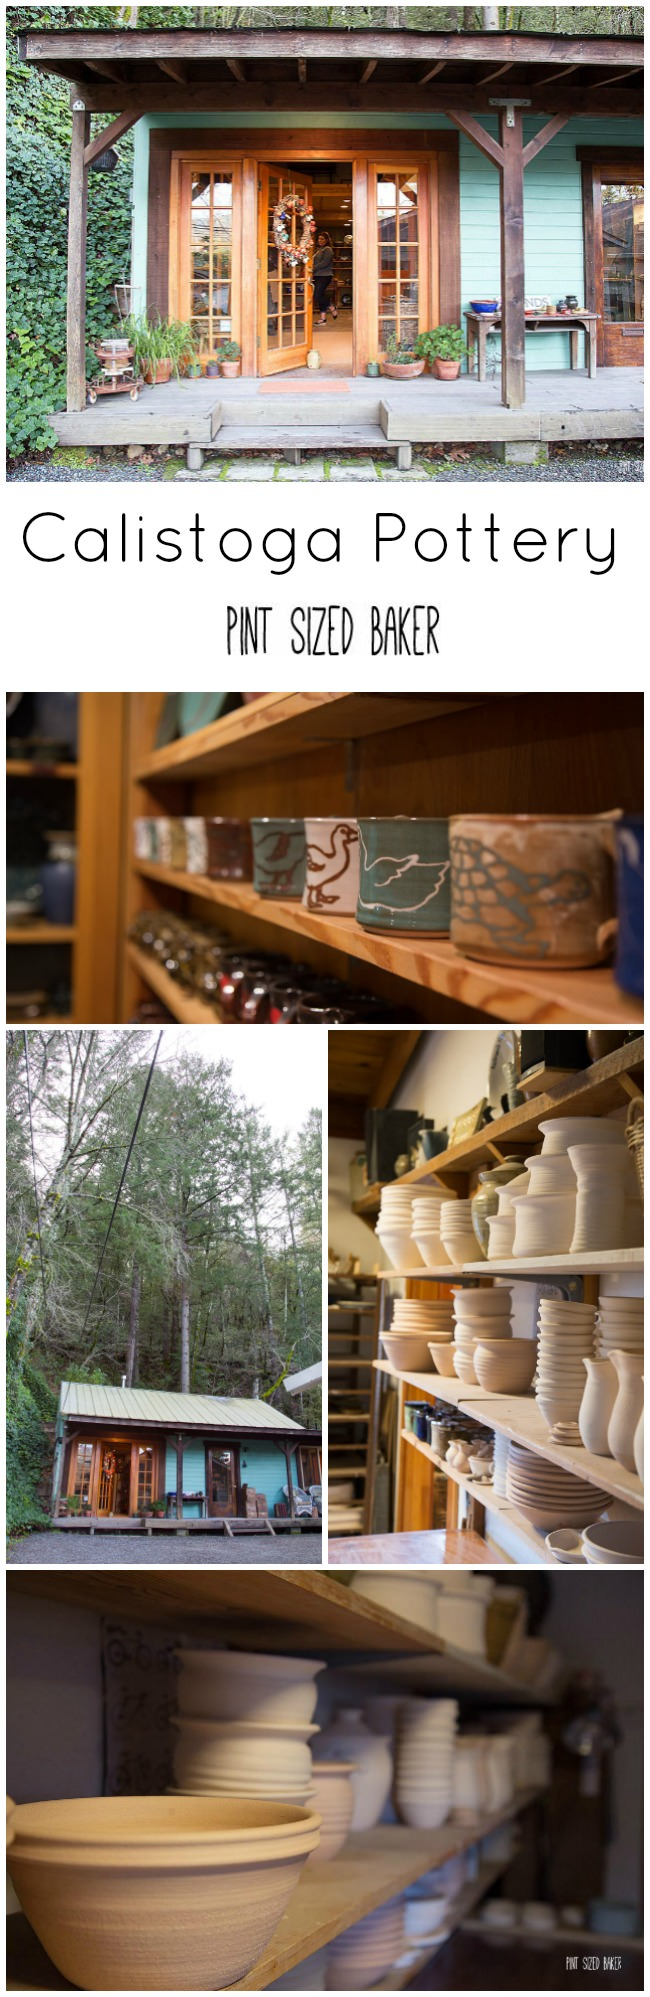 Stop in to the Calistoga Pottery for some one of a kind clay dishes, bowls, and serving trays.